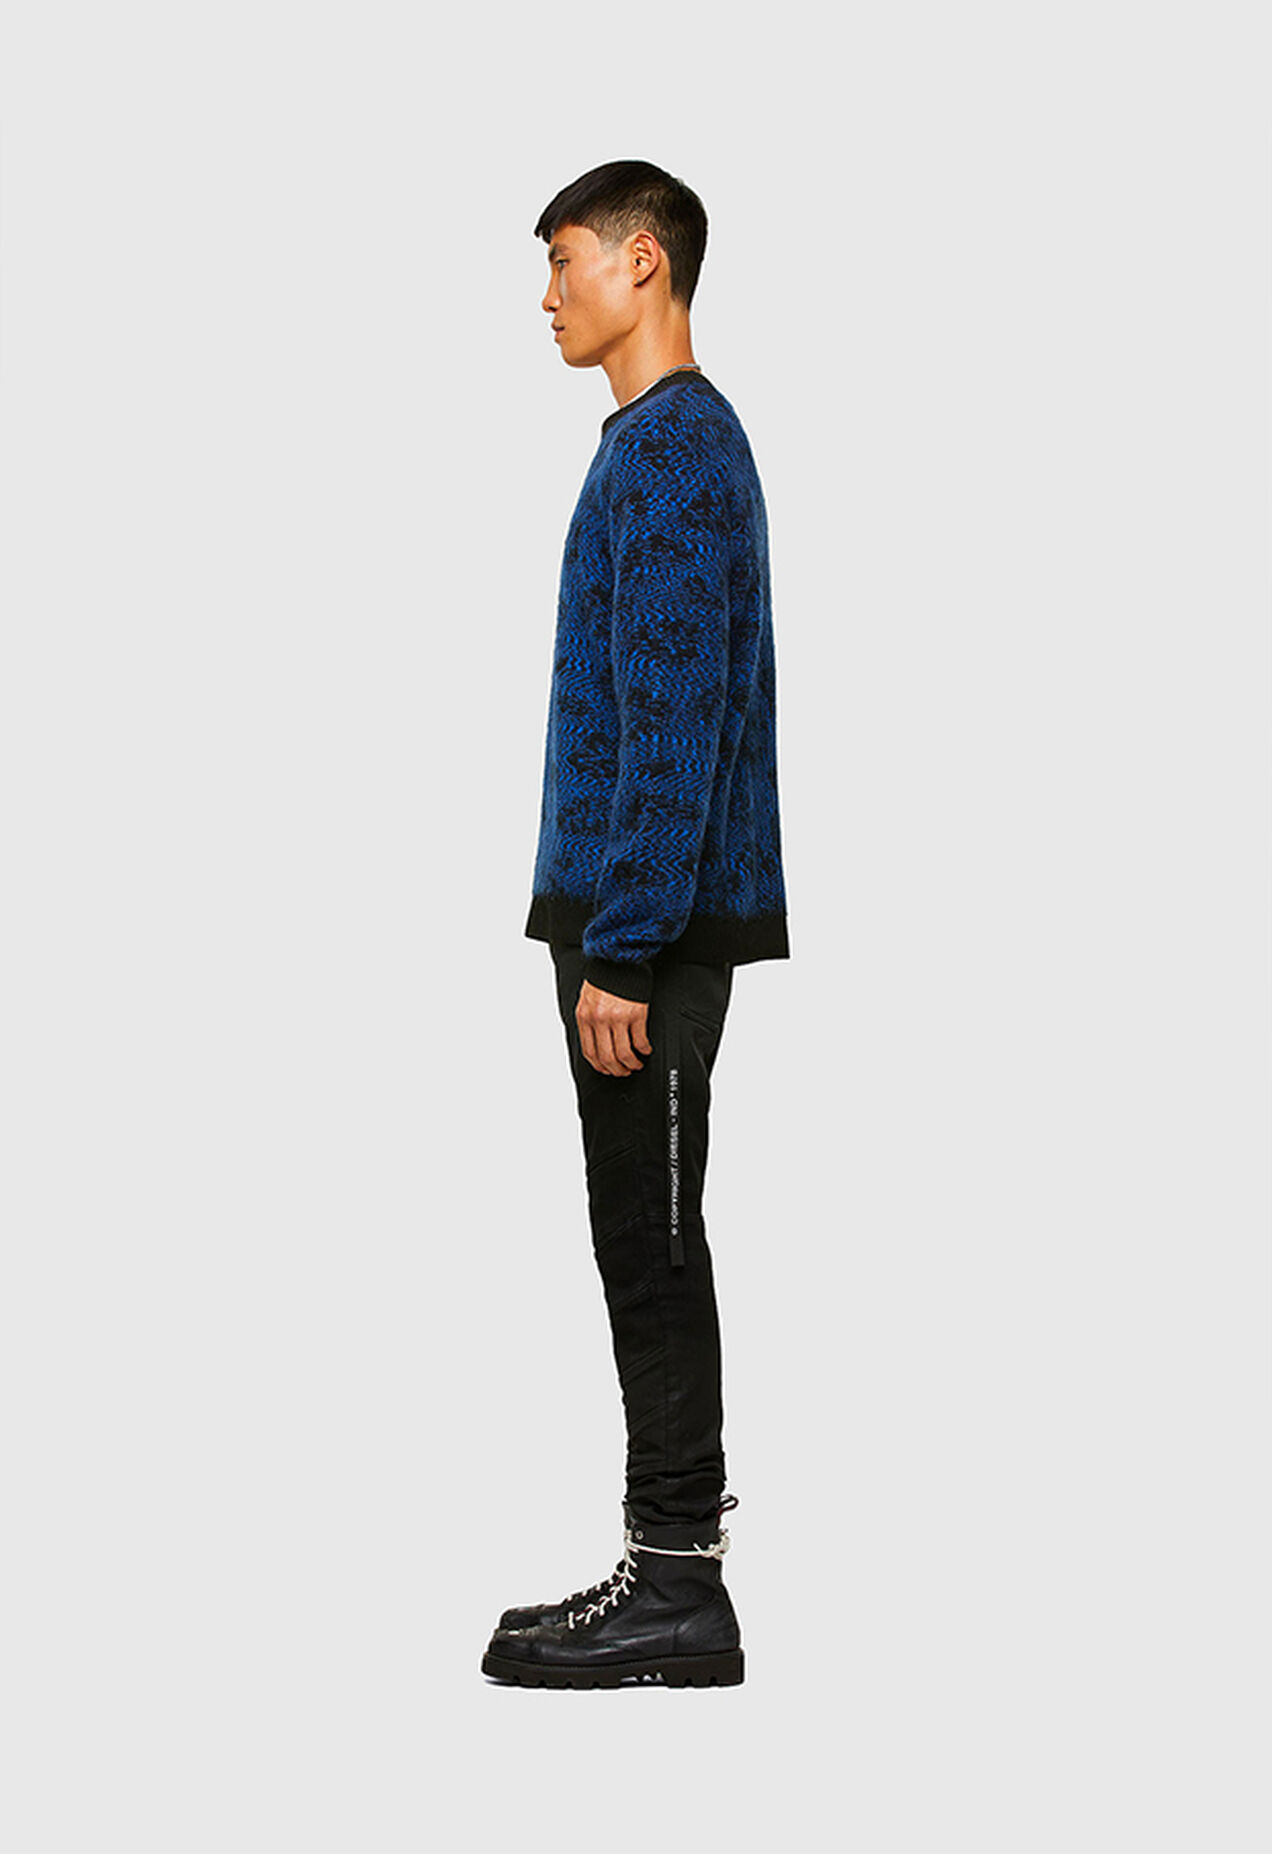 K-AZOTIC, Black/Blue - Knitwear